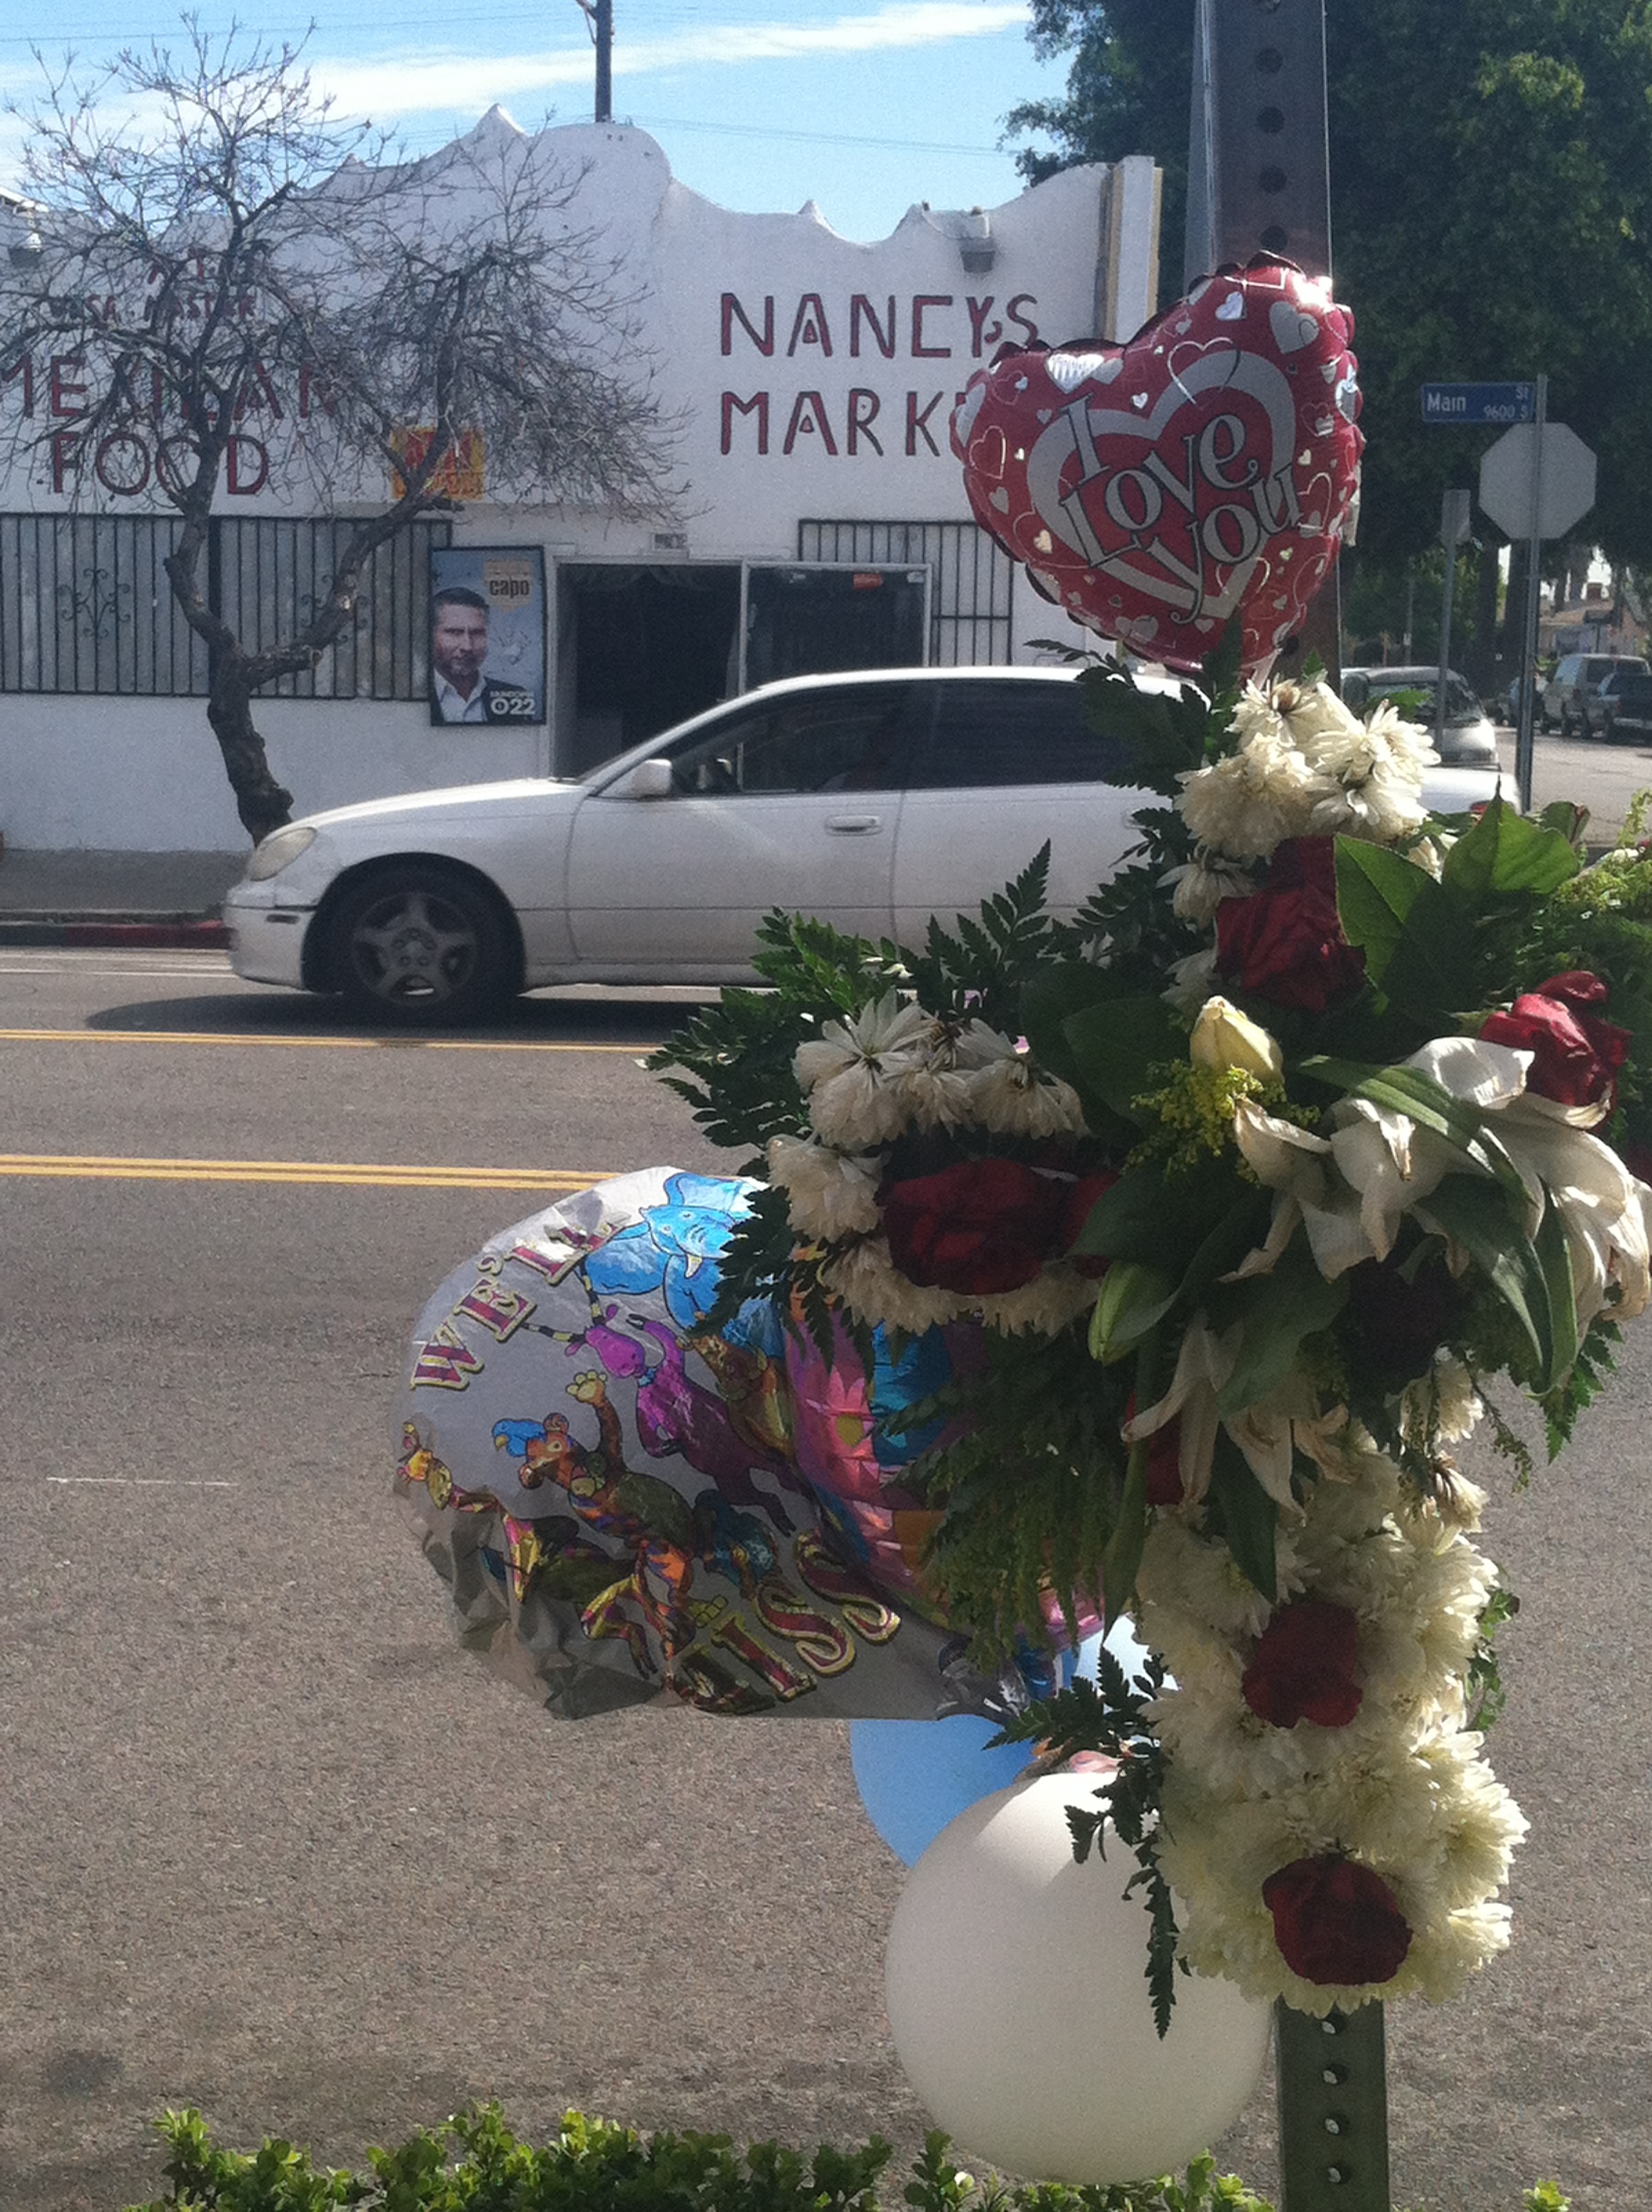 Street memorial for Douglas Wooley who was shot to death on March 6 at 97th and Main Street. Wooley, a sickle-cell anemia sufferer, was listening to music with earphones when he was gunned to the ground.